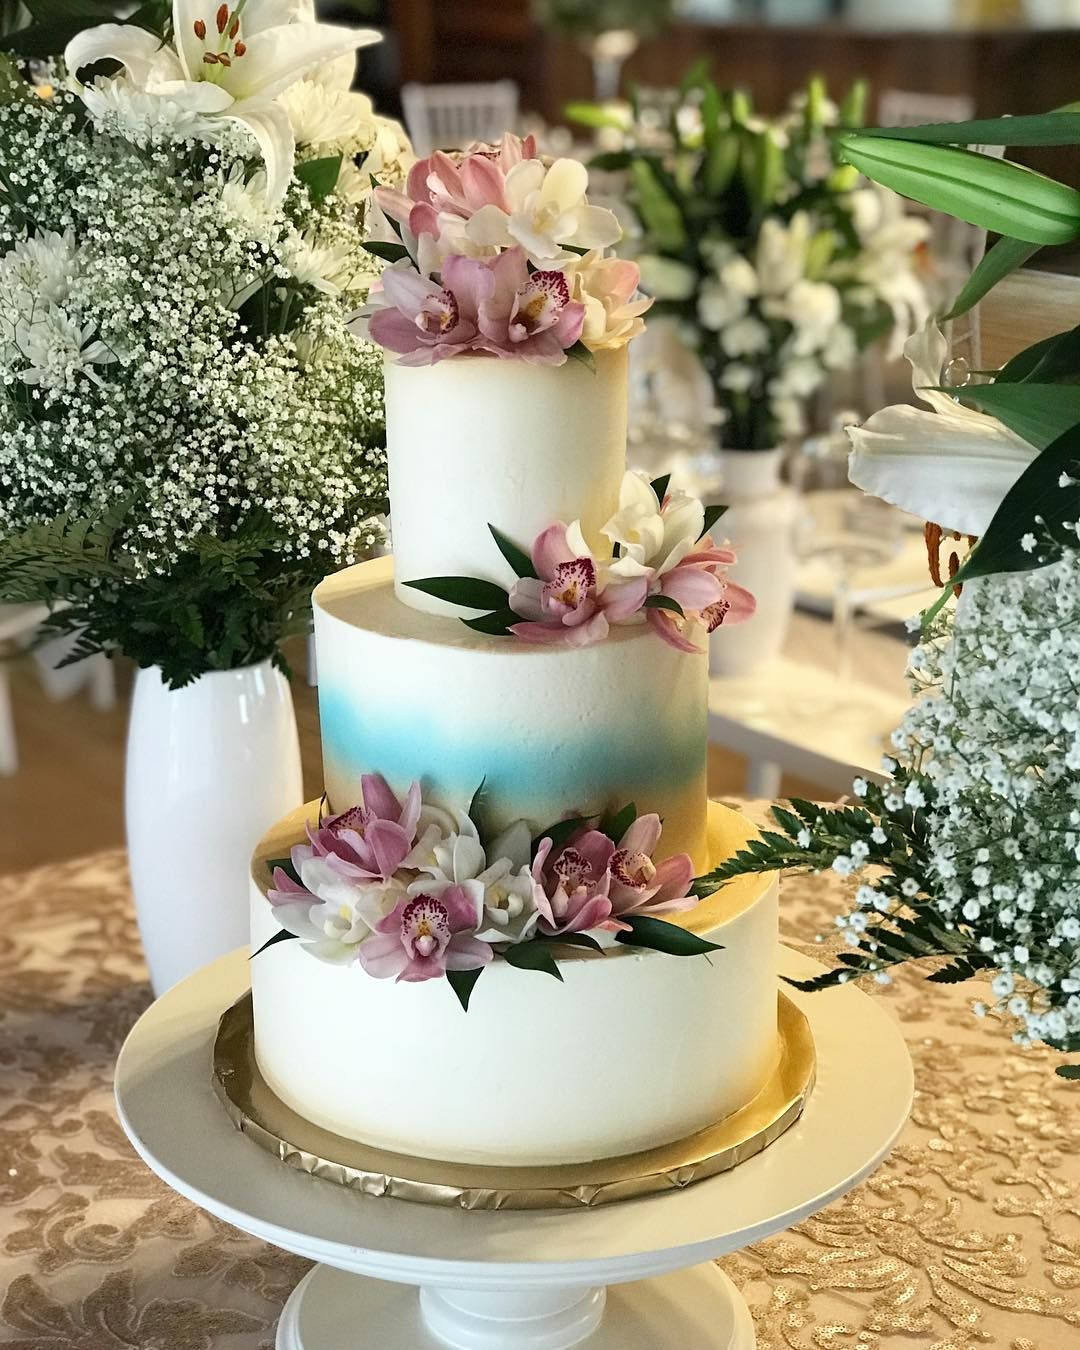 Lovely 3 Tier Buttercream Wedding Cake Mariannewhite: Three Tier Buttercream Cake With Fresh Florals. Congrats